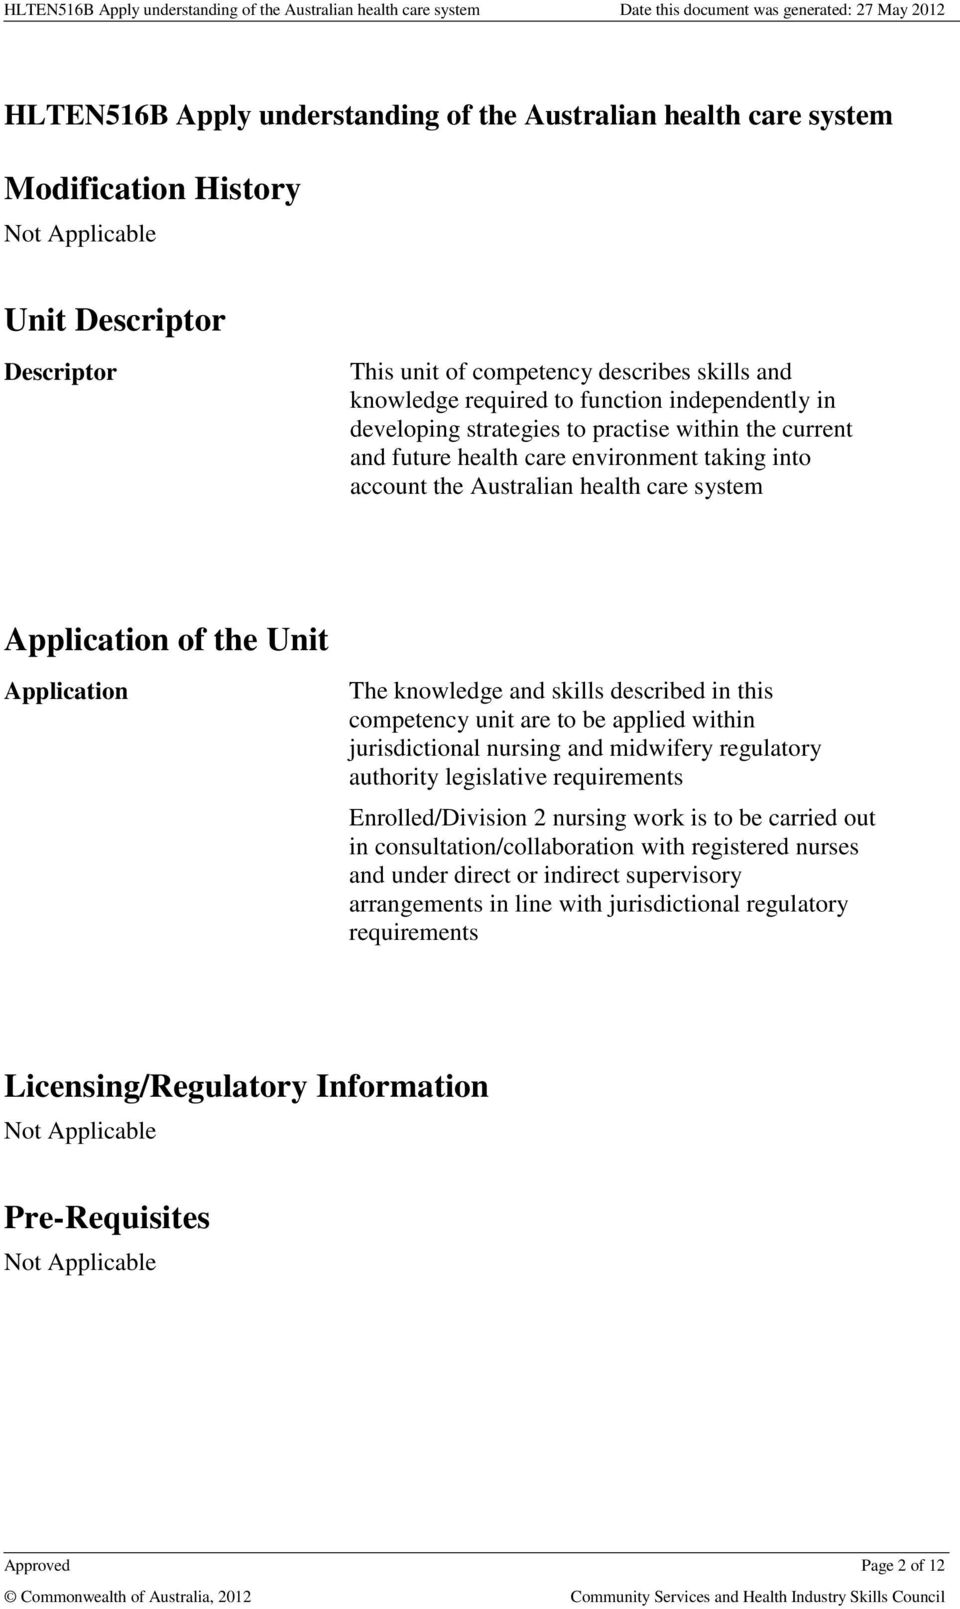 Application The knowledge and skills described in this competency unit are to be applied within jurisdictional nursing and midwifery regulatory authority legislative requirements Enrolled/Division 2